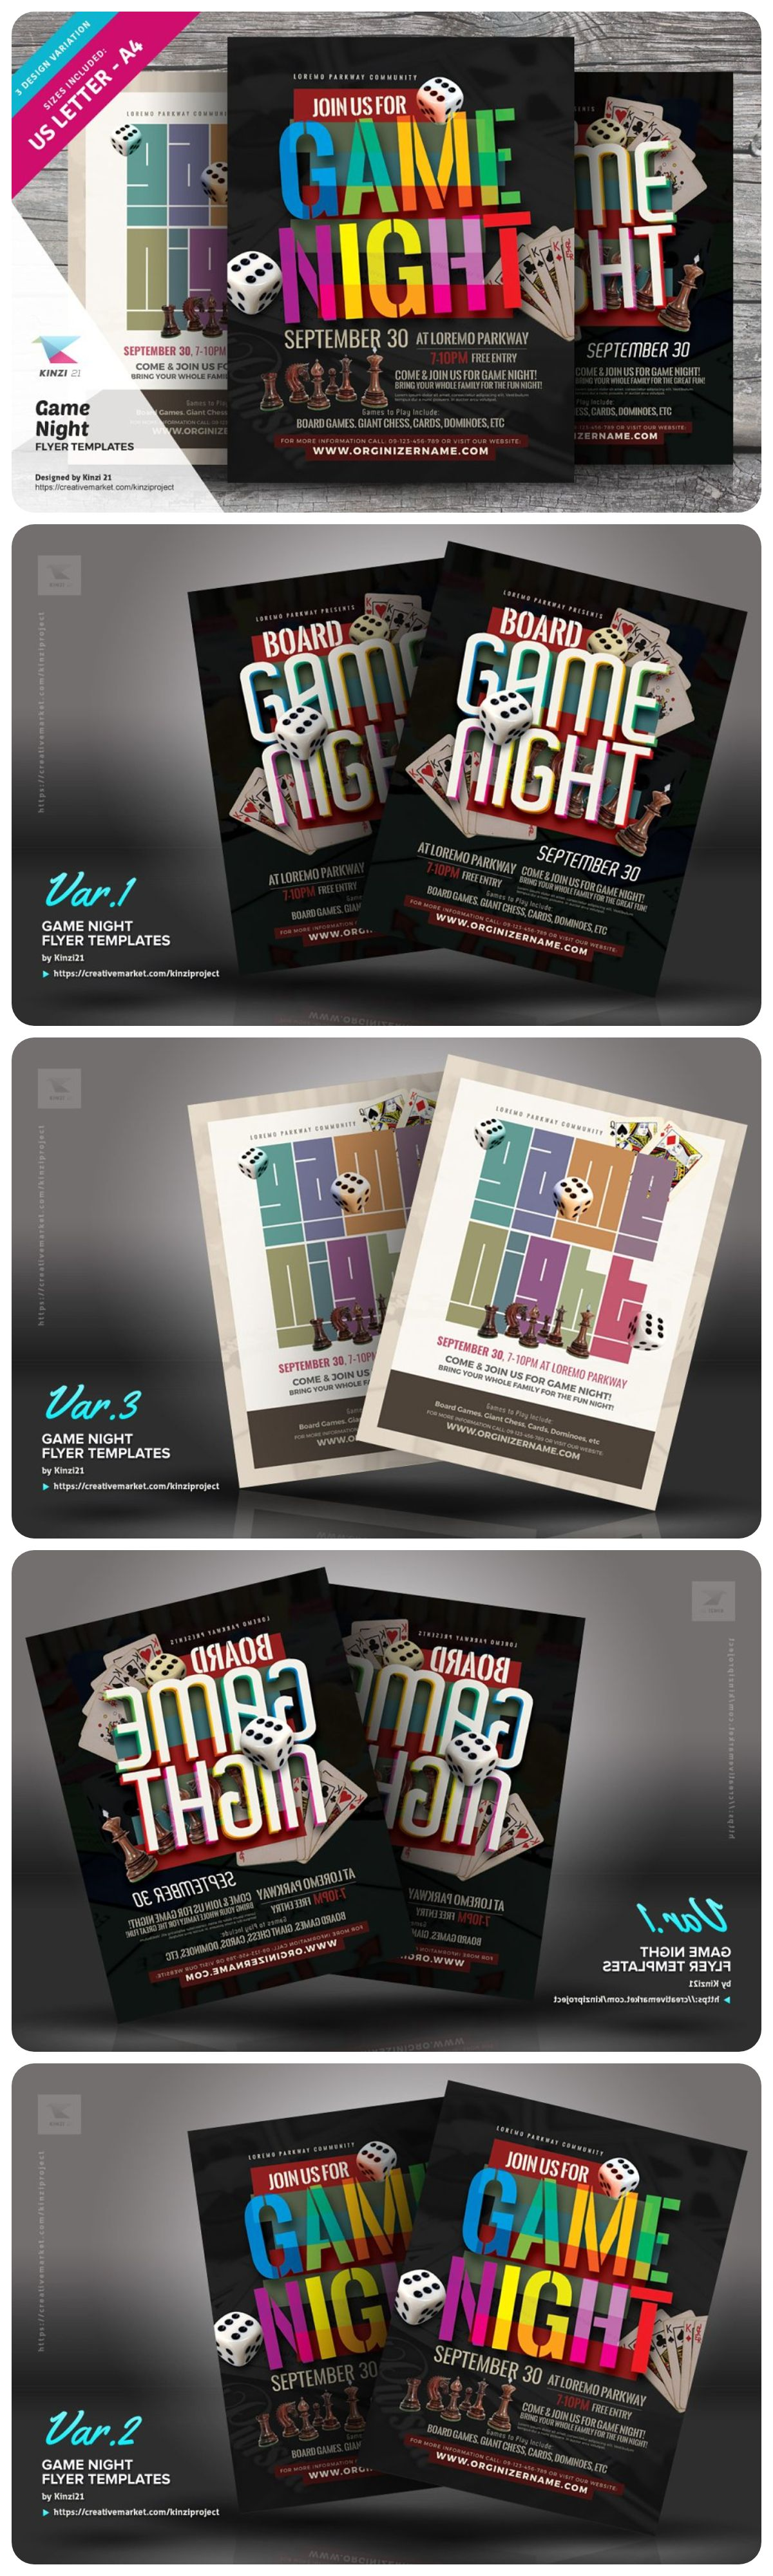 Game Night Flyer Templates Flyer Template Flyer Flyer Design Templates Board game night flyer template